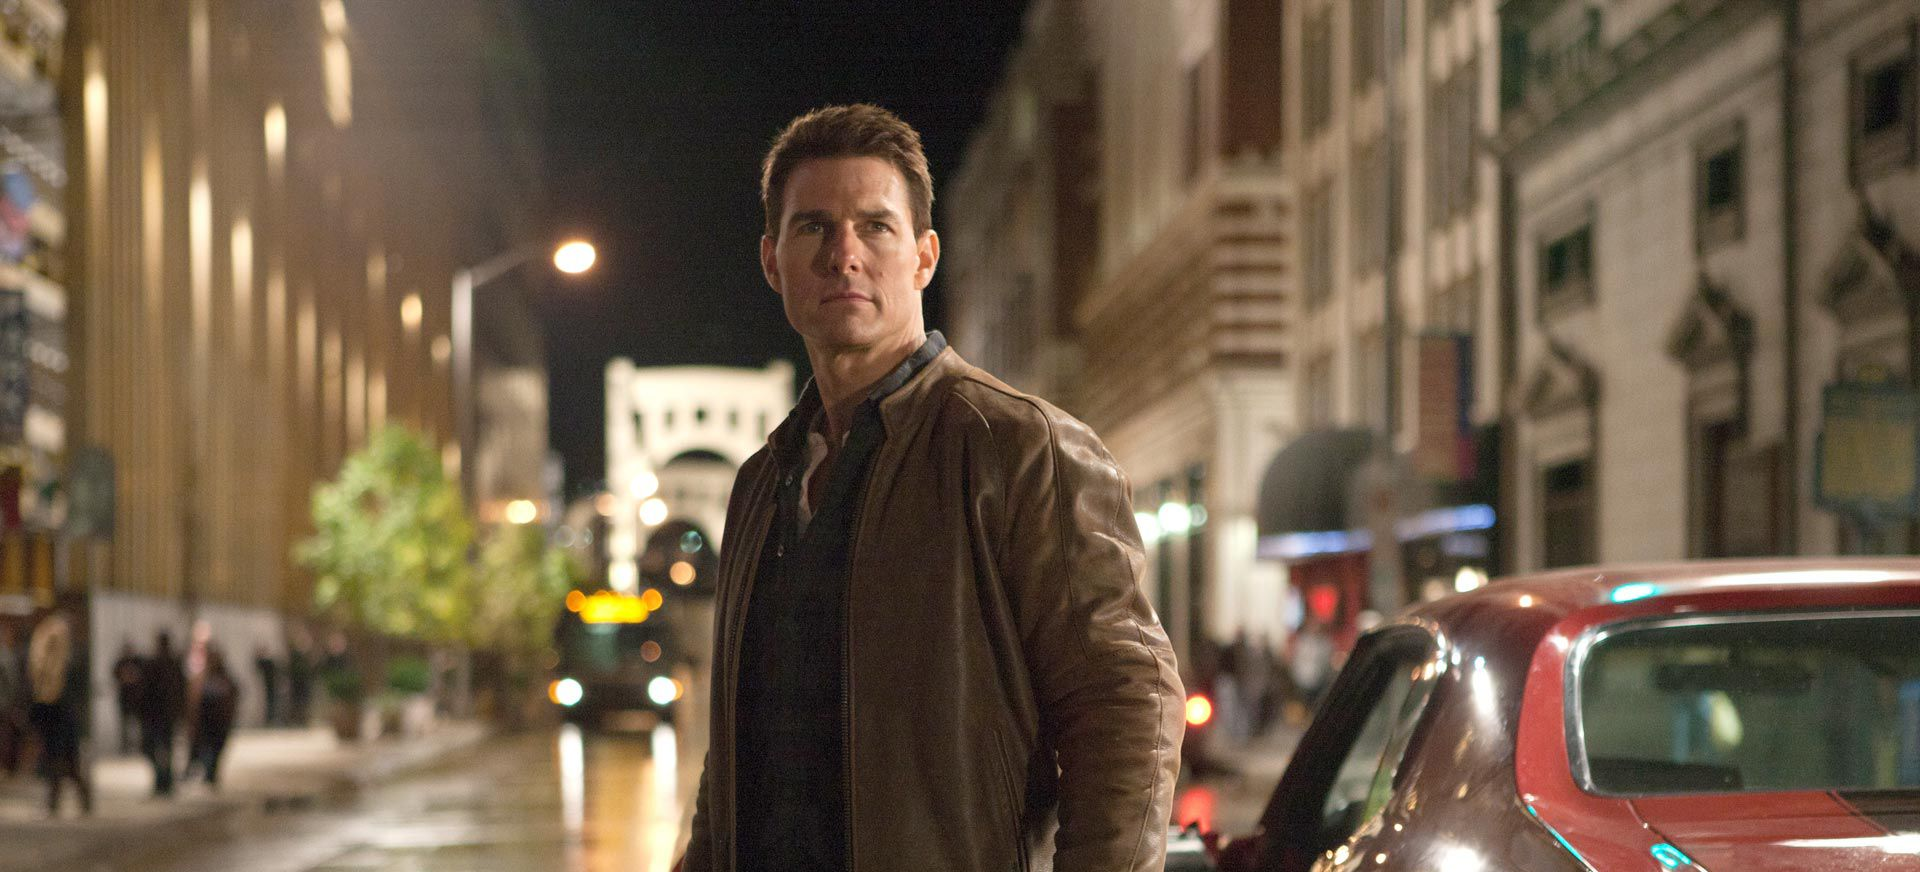 An image from Jack Reacher